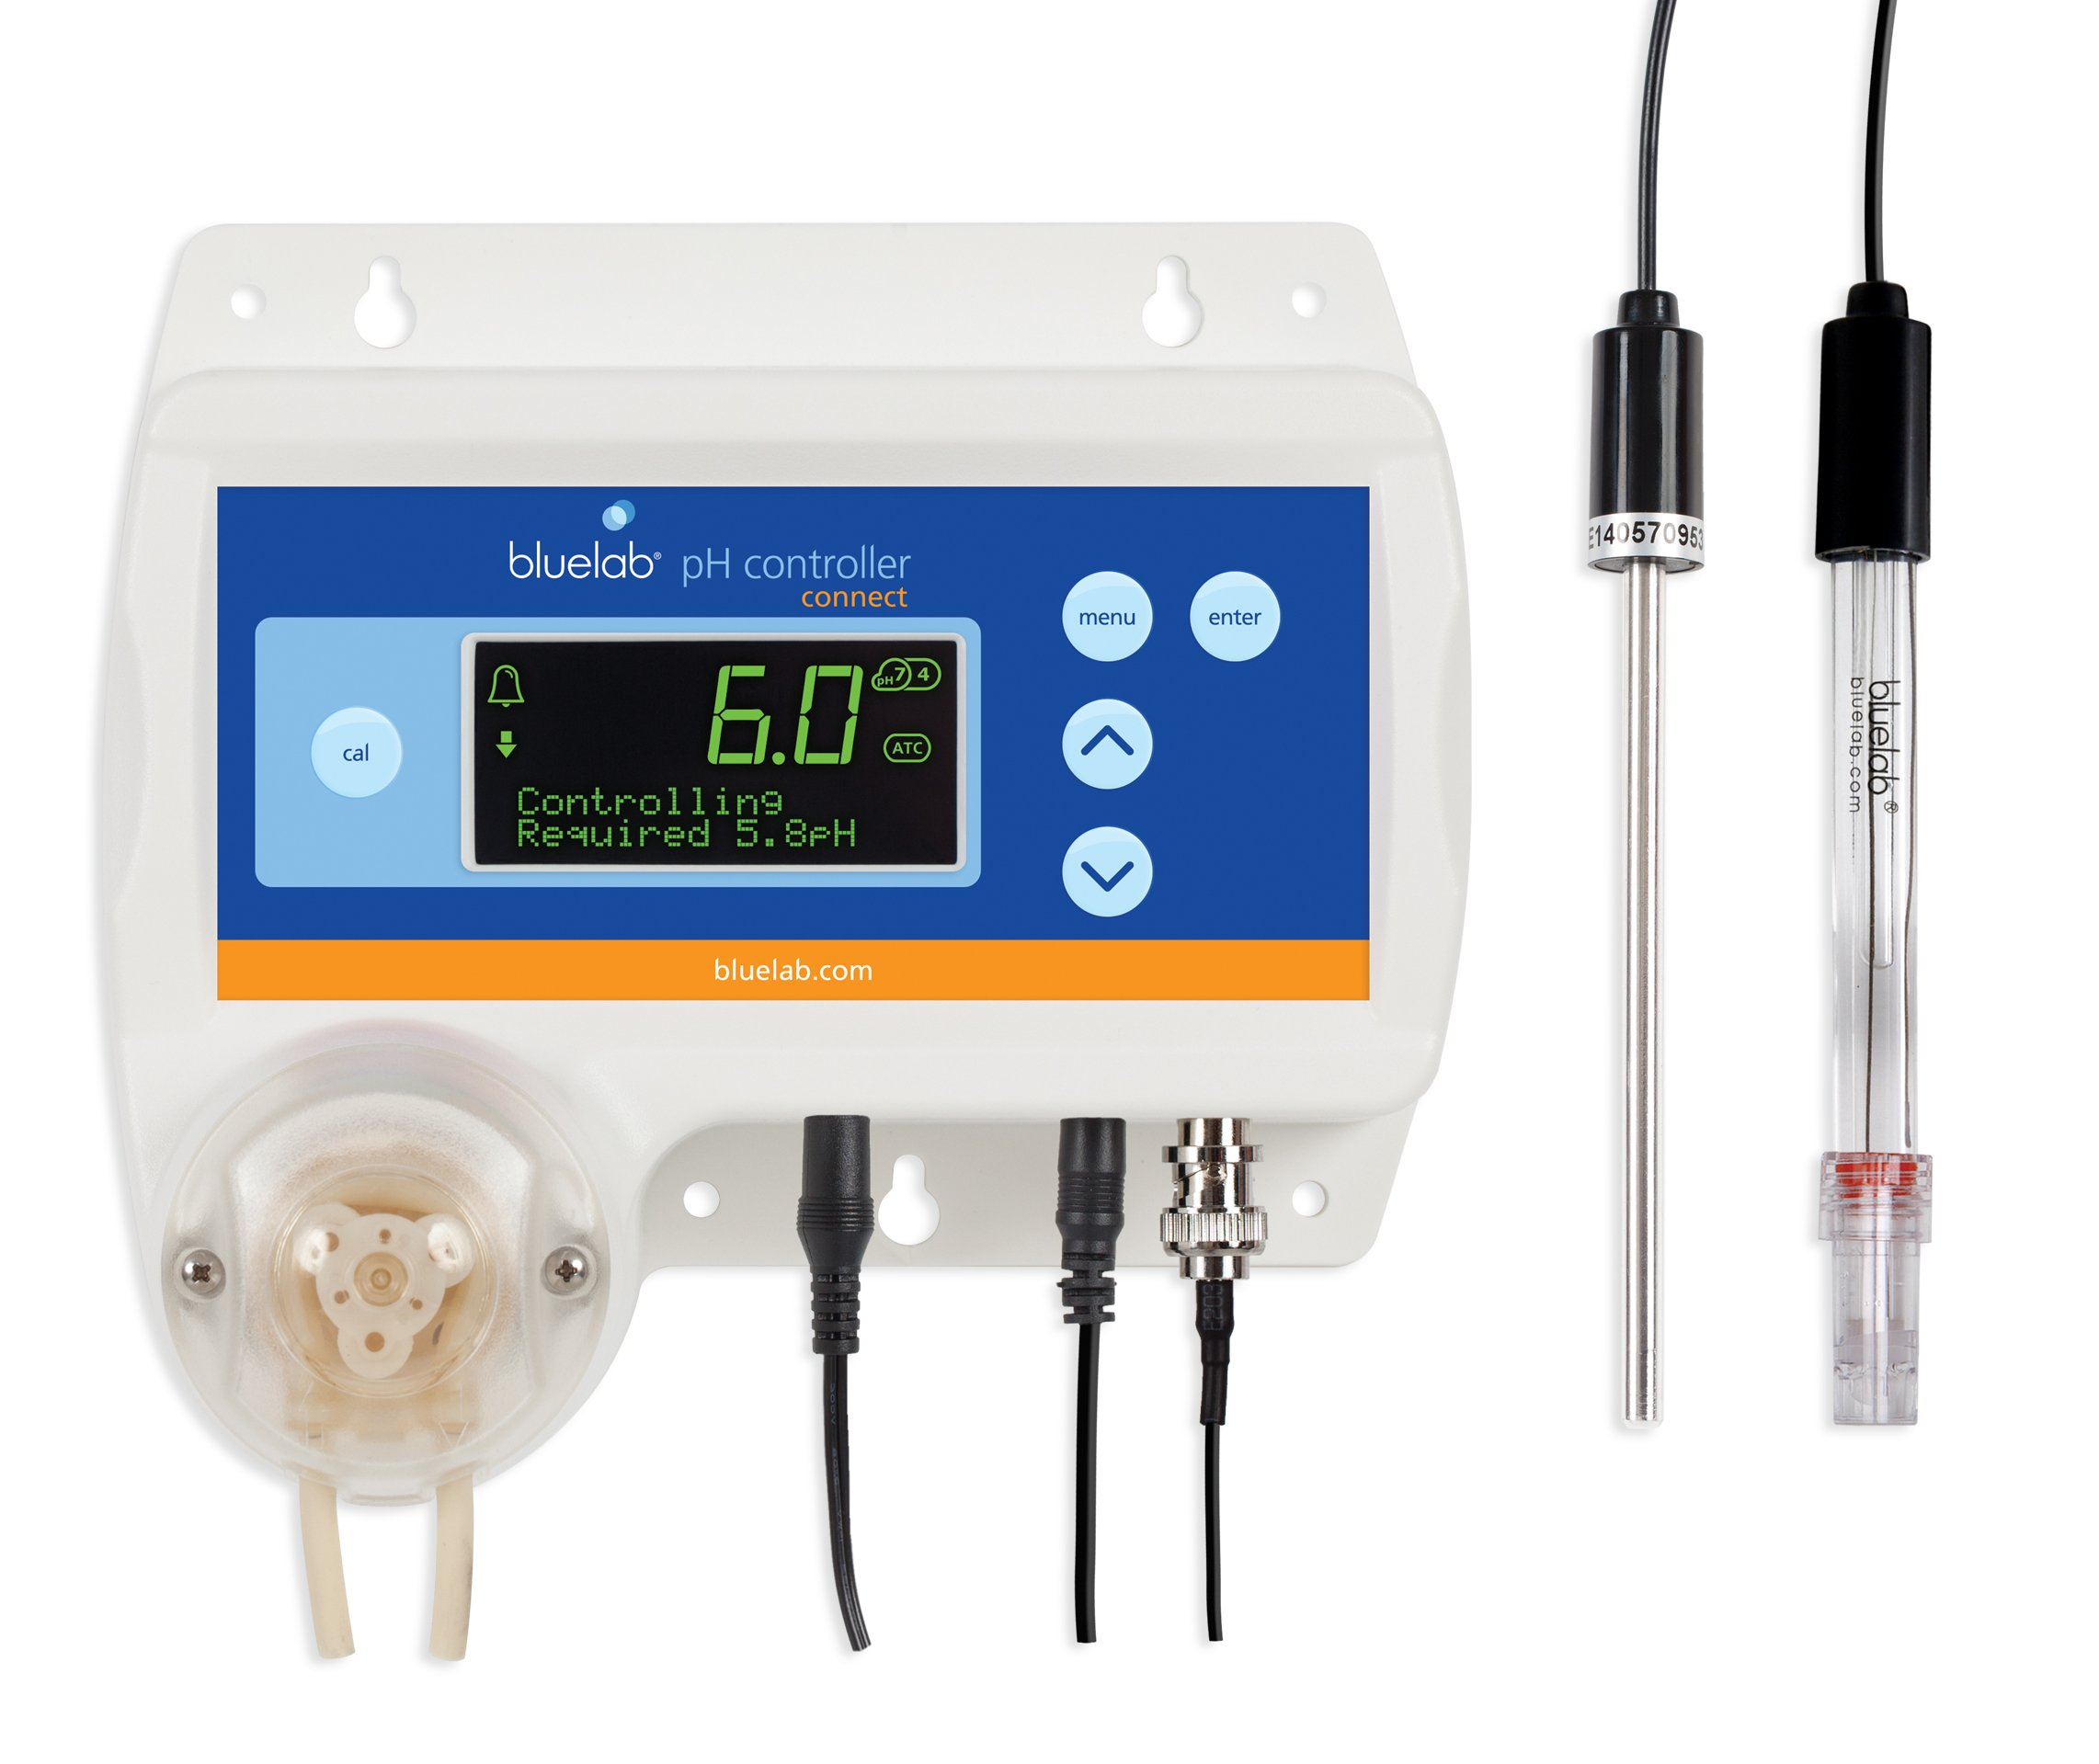 Bluelab pH Controller Connect with Clever Monitoring, Dosing and Data Logging of Solution pH Levels Excludes Bluelab Connect Stick